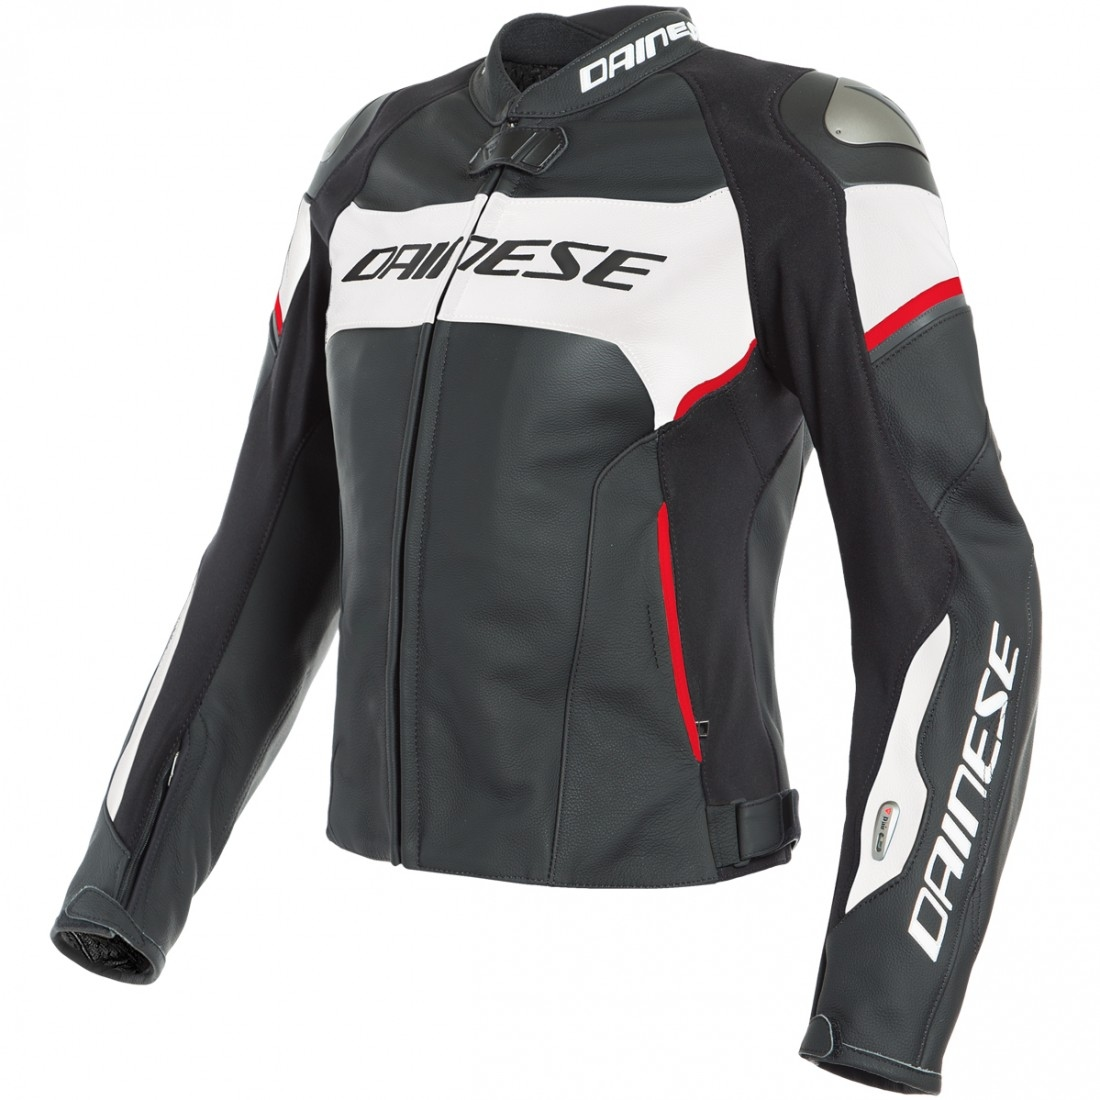 Giacca moto donna pelle racing Dainese RACING 3 LADY Bianco Nero Rosso